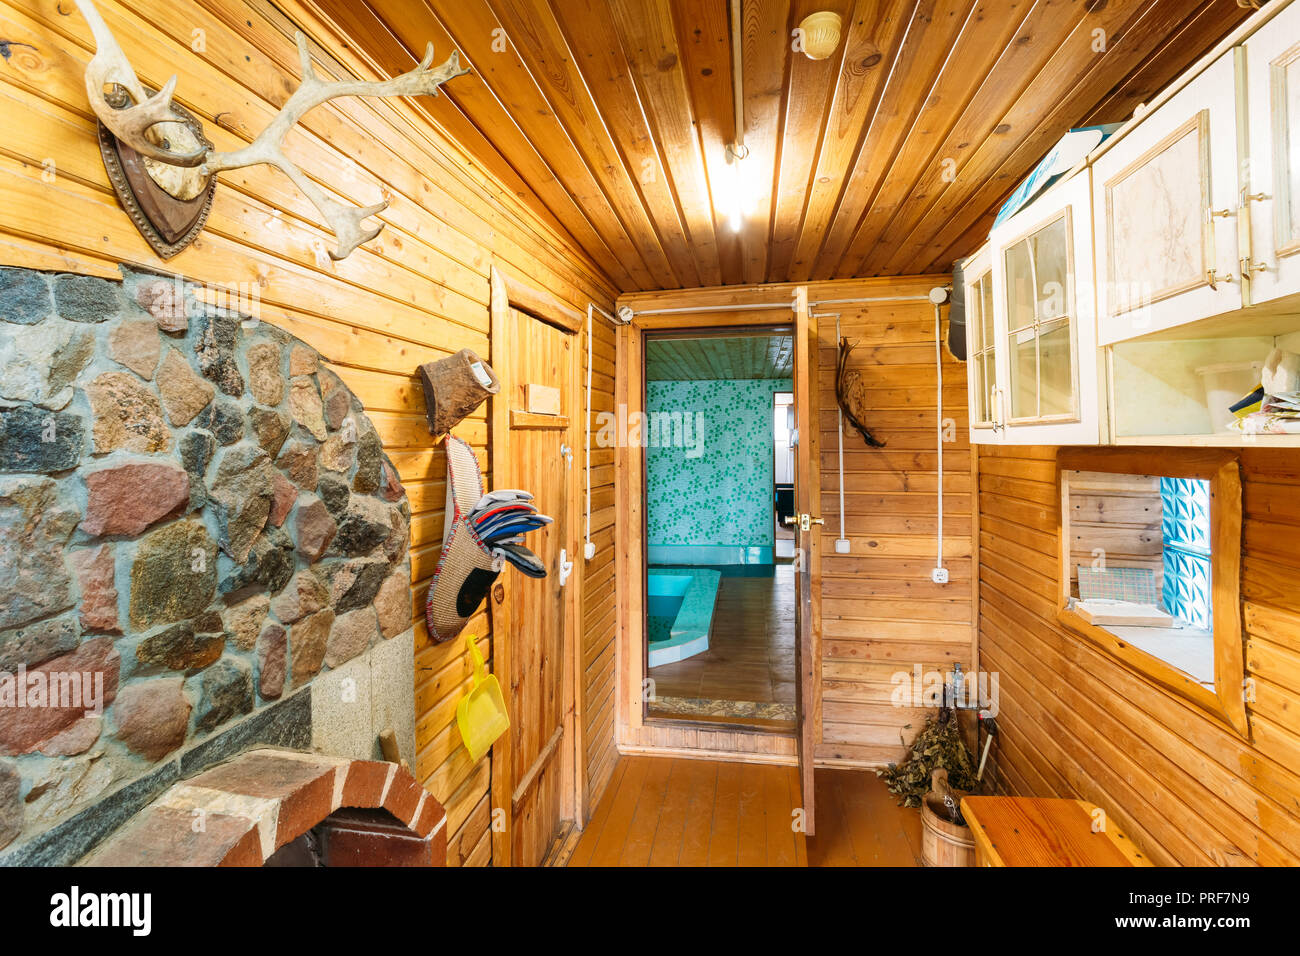 Dressing Room Or Cloakroom In Russian Bath Or Interior Of Sauna ...